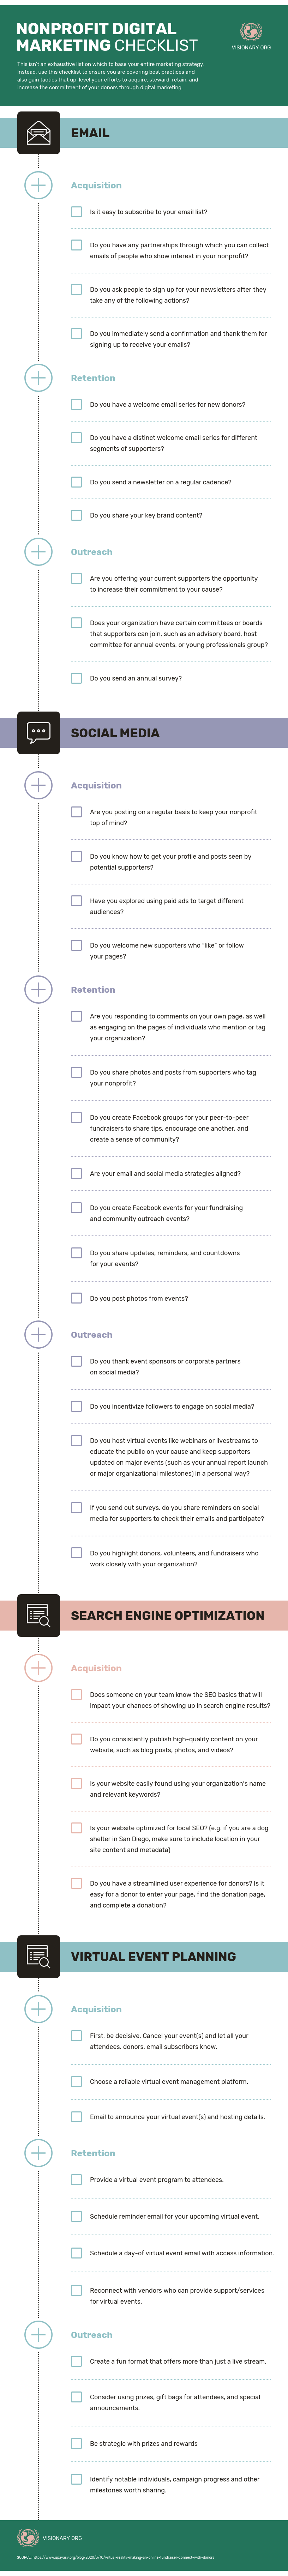 Nonprofit Digital Marketing Checklist Infographic Template